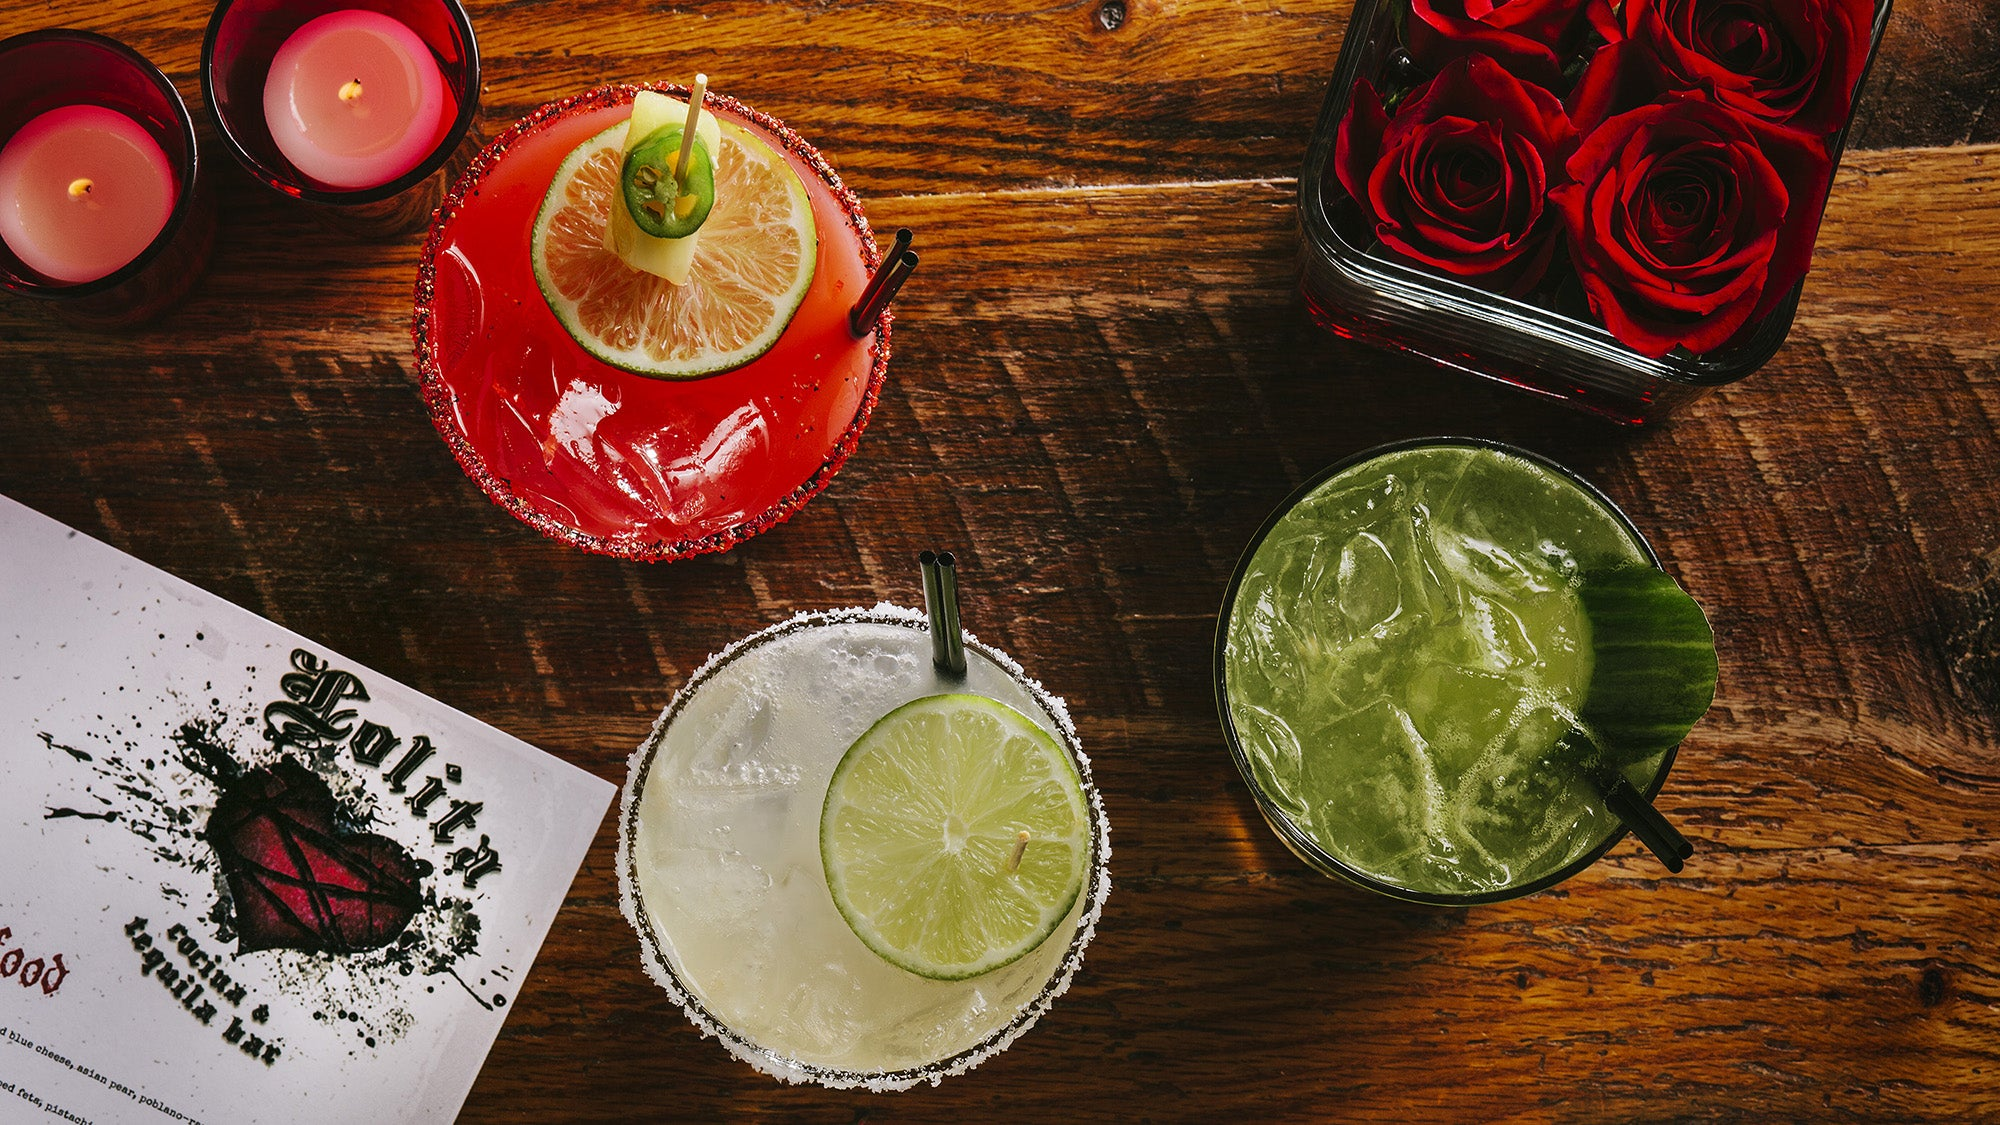 Diablo, Lolita, and spicy cucumber margaritas at Lolita Cocina & Tequila Bar